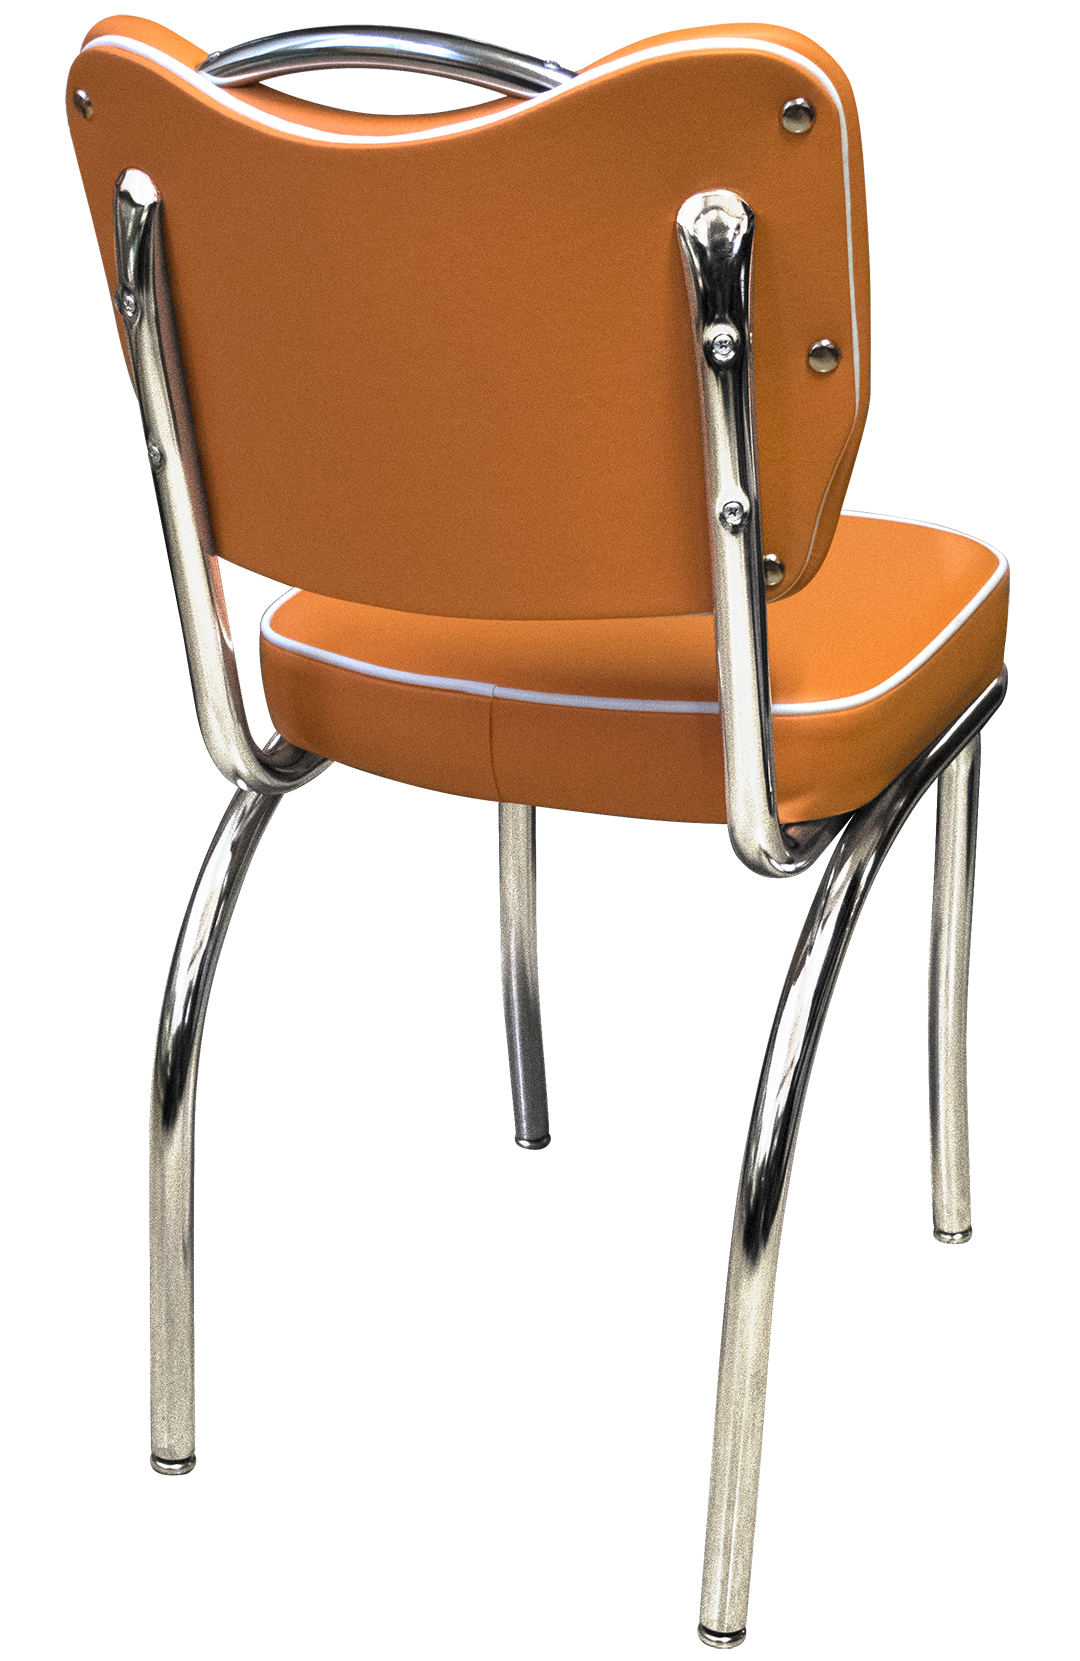 Retro Dining Chair 921hb New Retro Dining Classic Handle Back Diner Chair